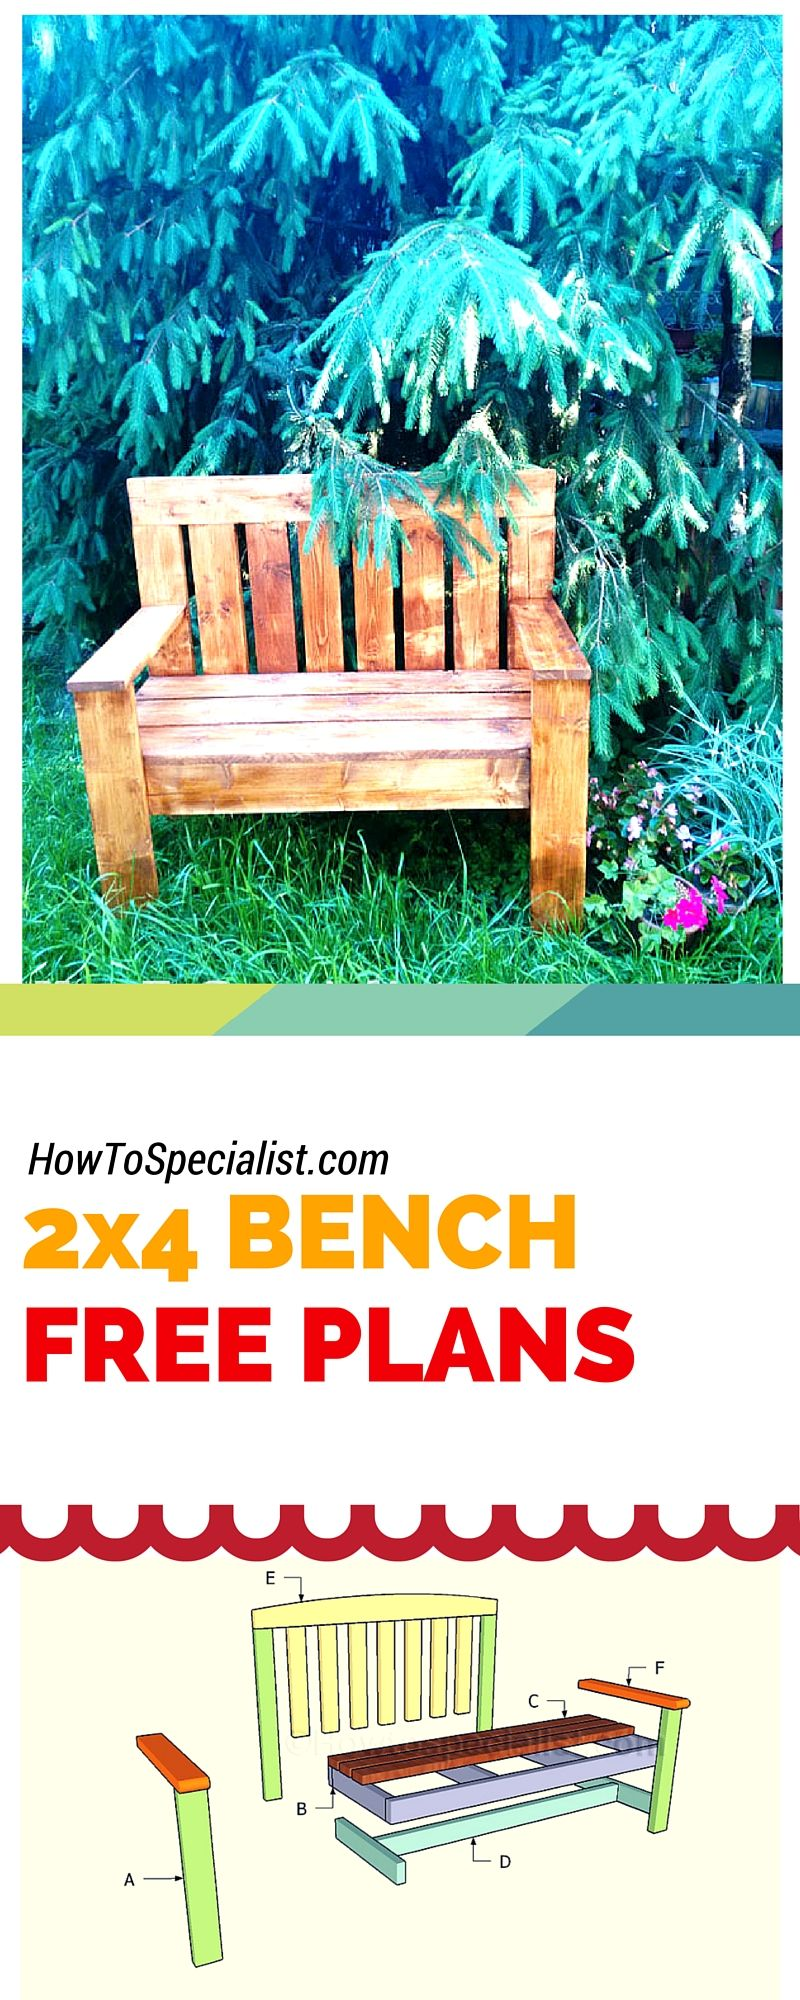 2 4 Bench Plans Diy Bench Outdoor Garden Bench Diy Garden Bench Plans